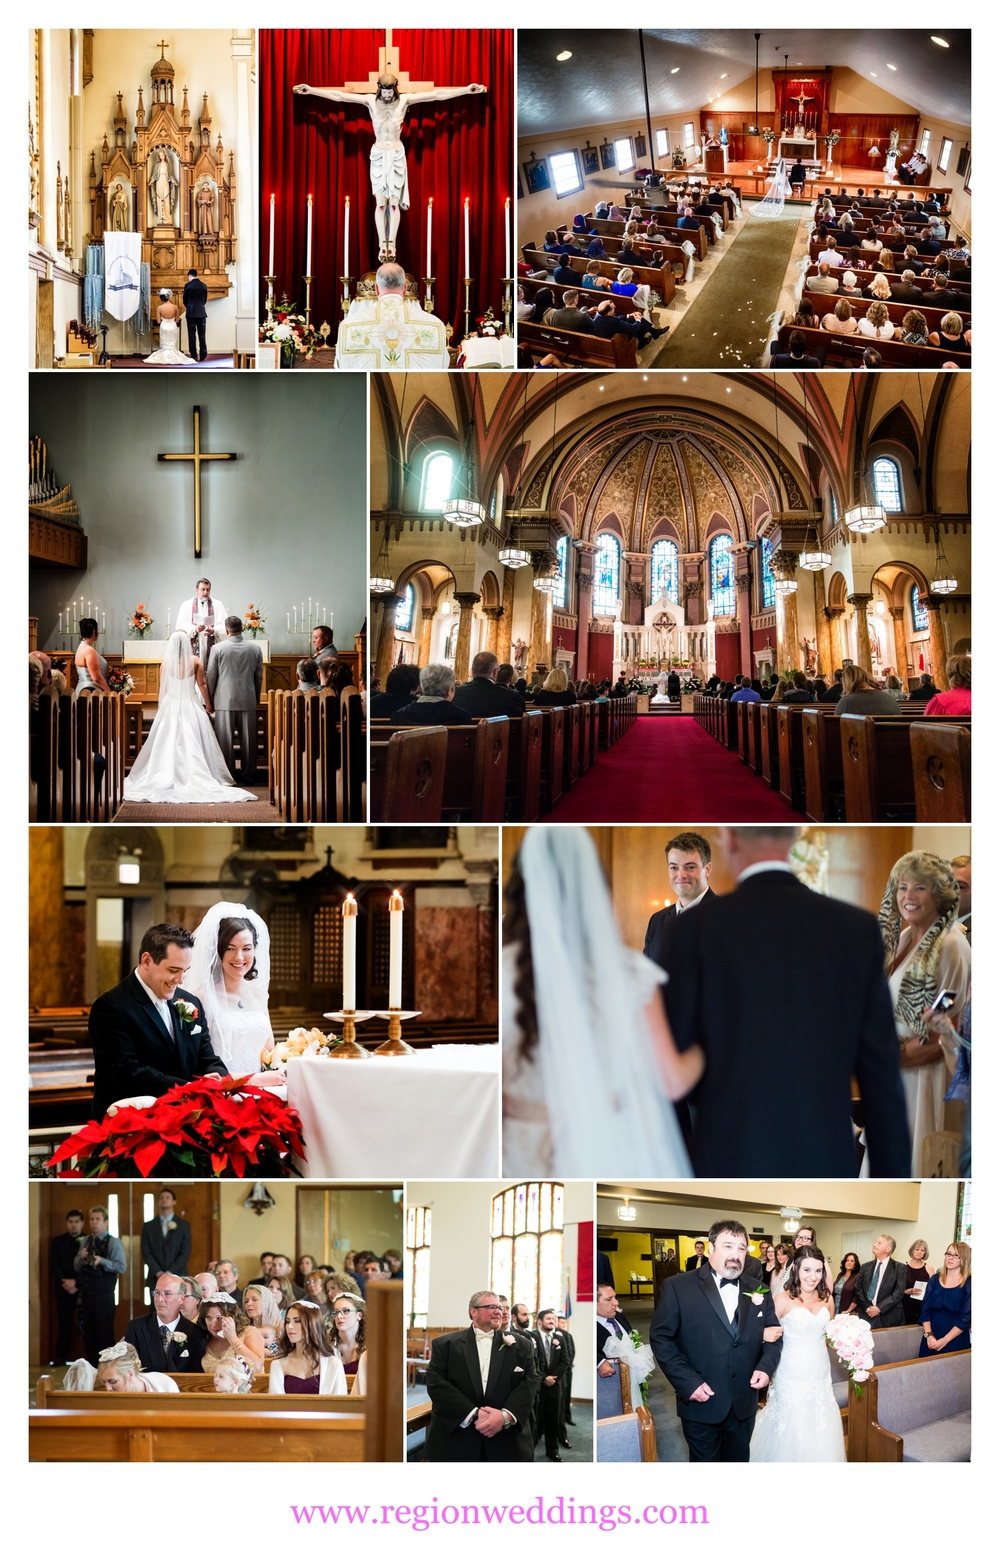 Church wedding ceremonies in Northwest Indiana, Chicago and Michigan.